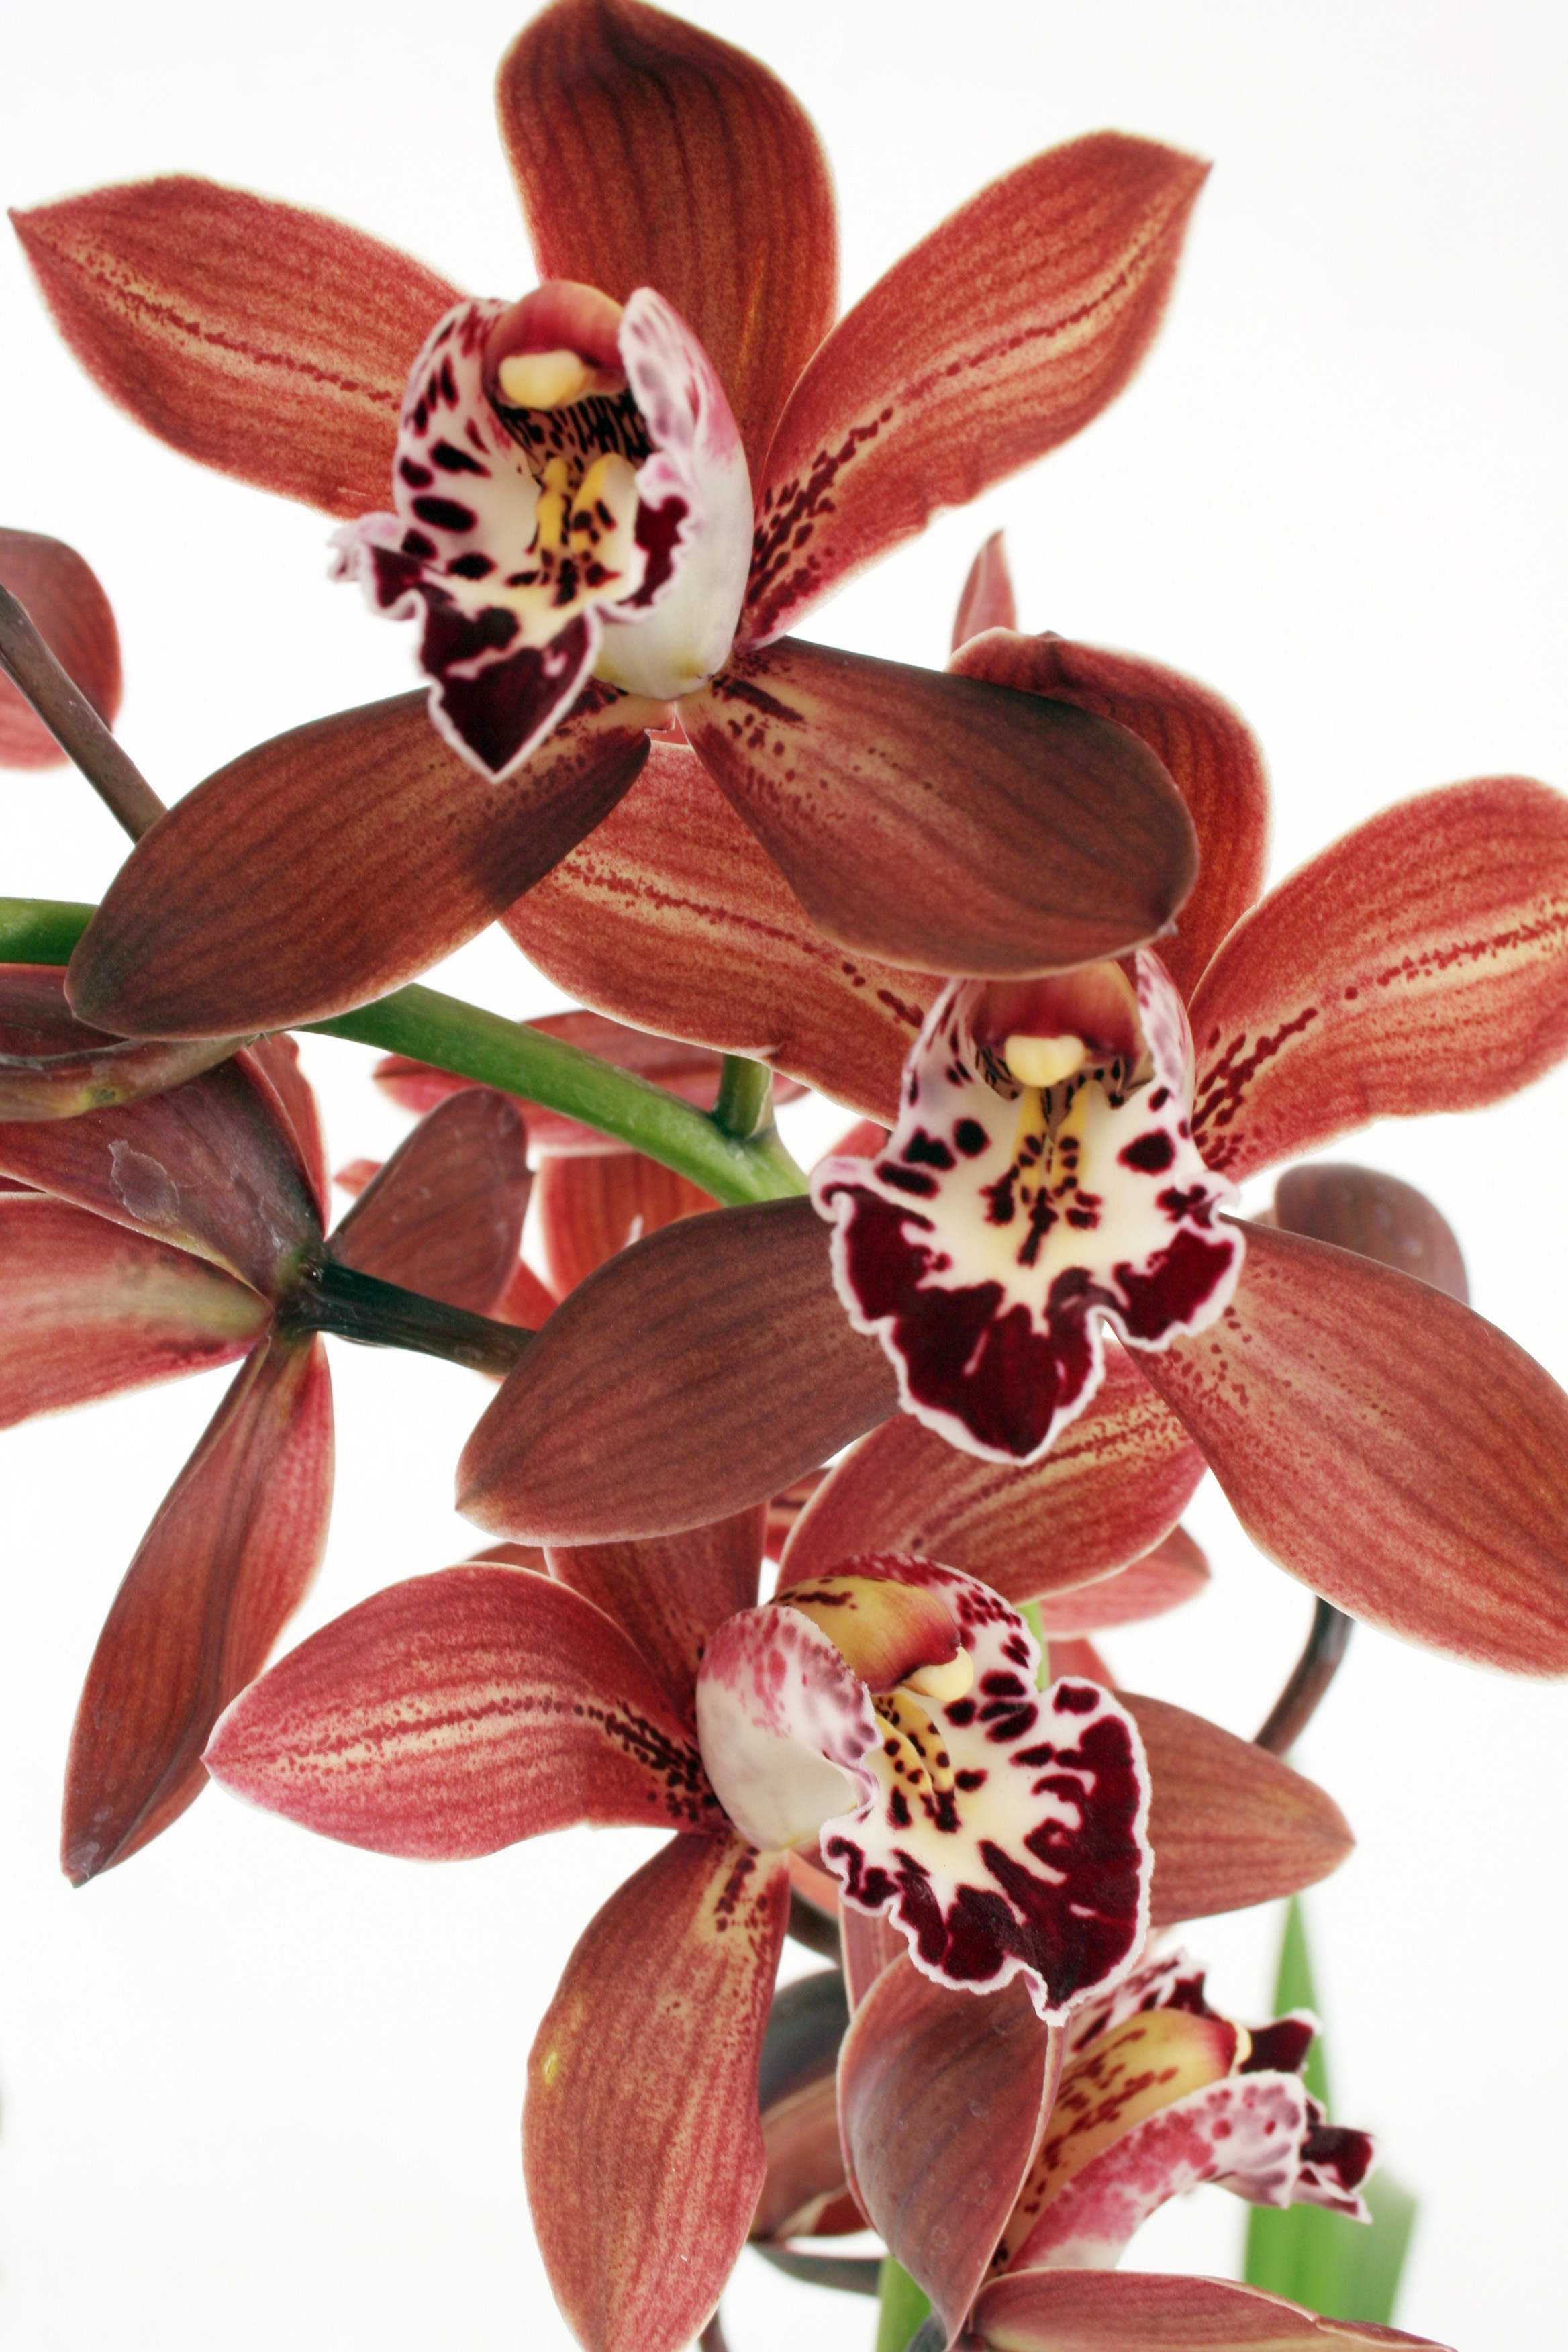 cymbidium Long Lasting House Plants on portable house plants, cool looking house plants, colorful house plants, non-toxic house plants, inexpensive house plants, hypoallergenic house plants, compact house plants, refreshing house plants, night blooming house plants, rugged house plants, robust house plants, soothing house plants, elegant house plants, small house plants, organic house plants, lightweight house plants, weather proof house plants, fragrant house plants, strong house plants, easy to maintain house plants,